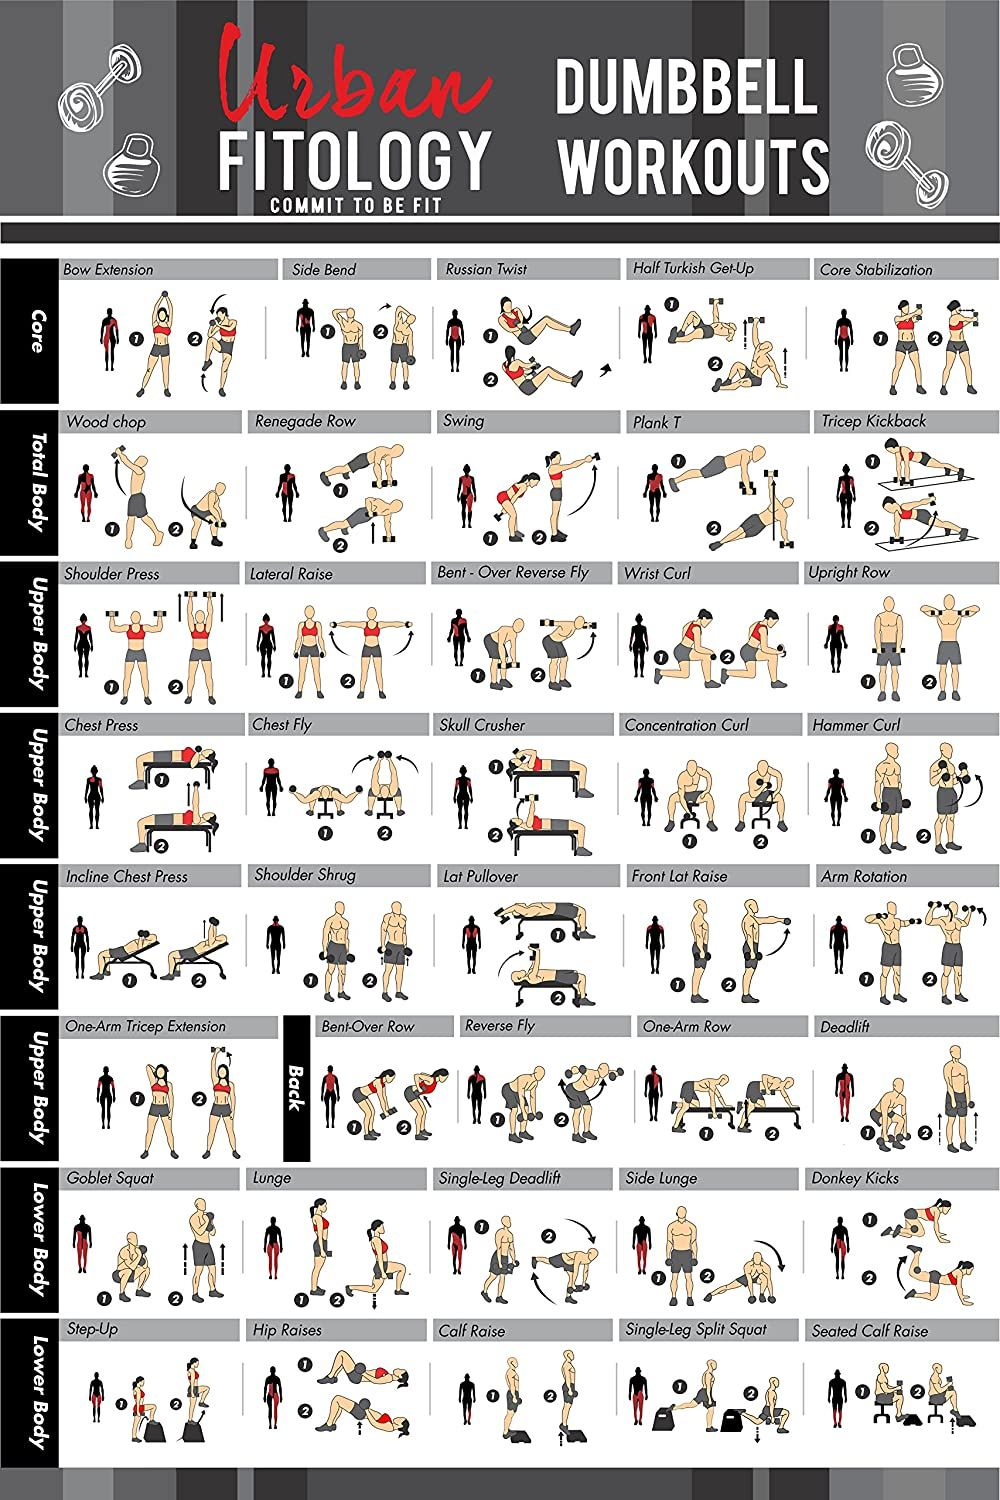 Urban Fitology Dumbbell Exercise Workout Poster for Men and Women - 40 Exercises | Double Laminated Full Body Fitness Guide | Perfect Workout Routine Chart for Bodybuilding & CrossFit | 20 X 30